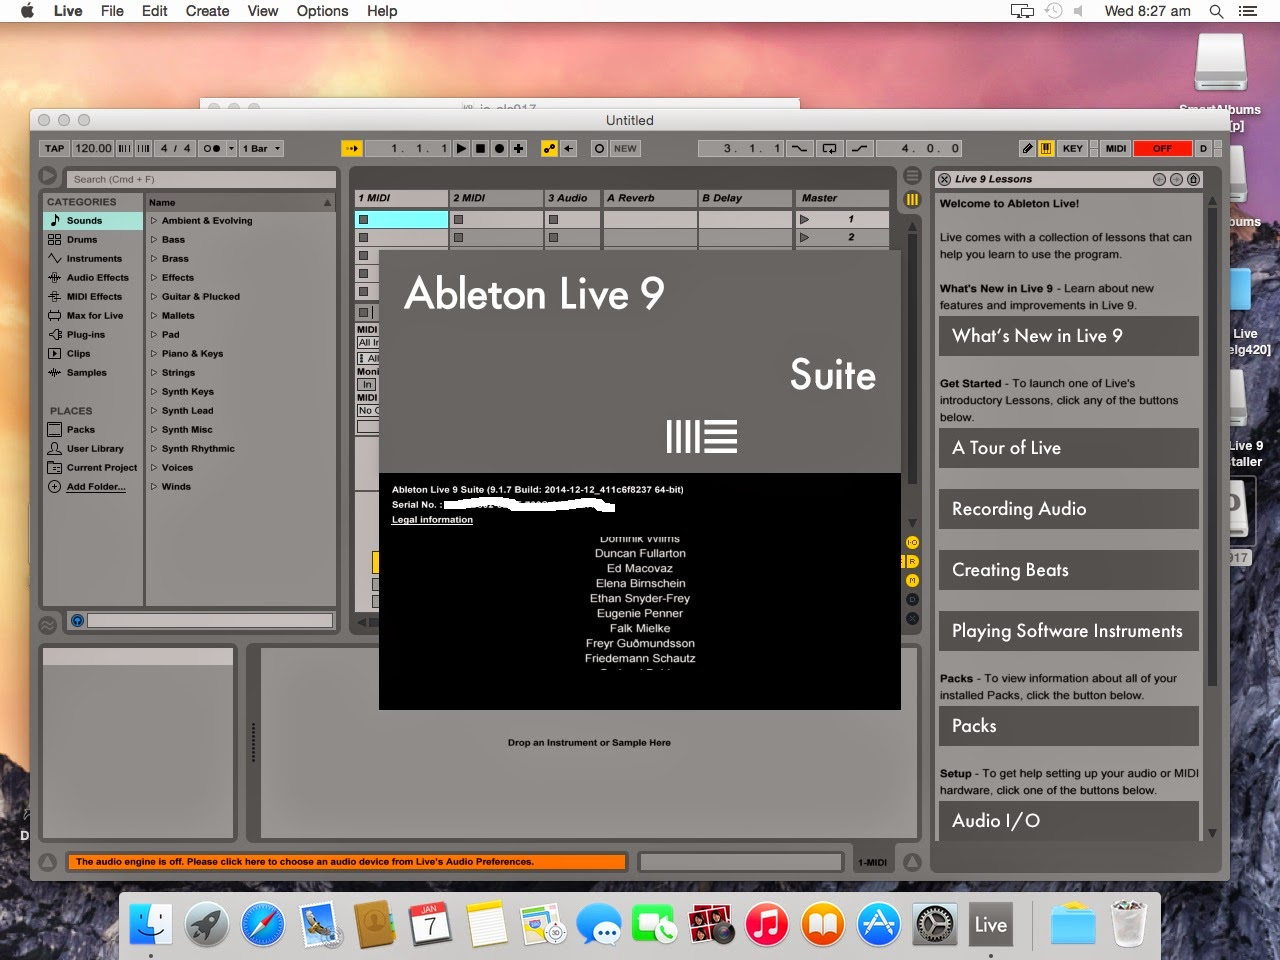 ableton live 9 crack mac os x yosemite